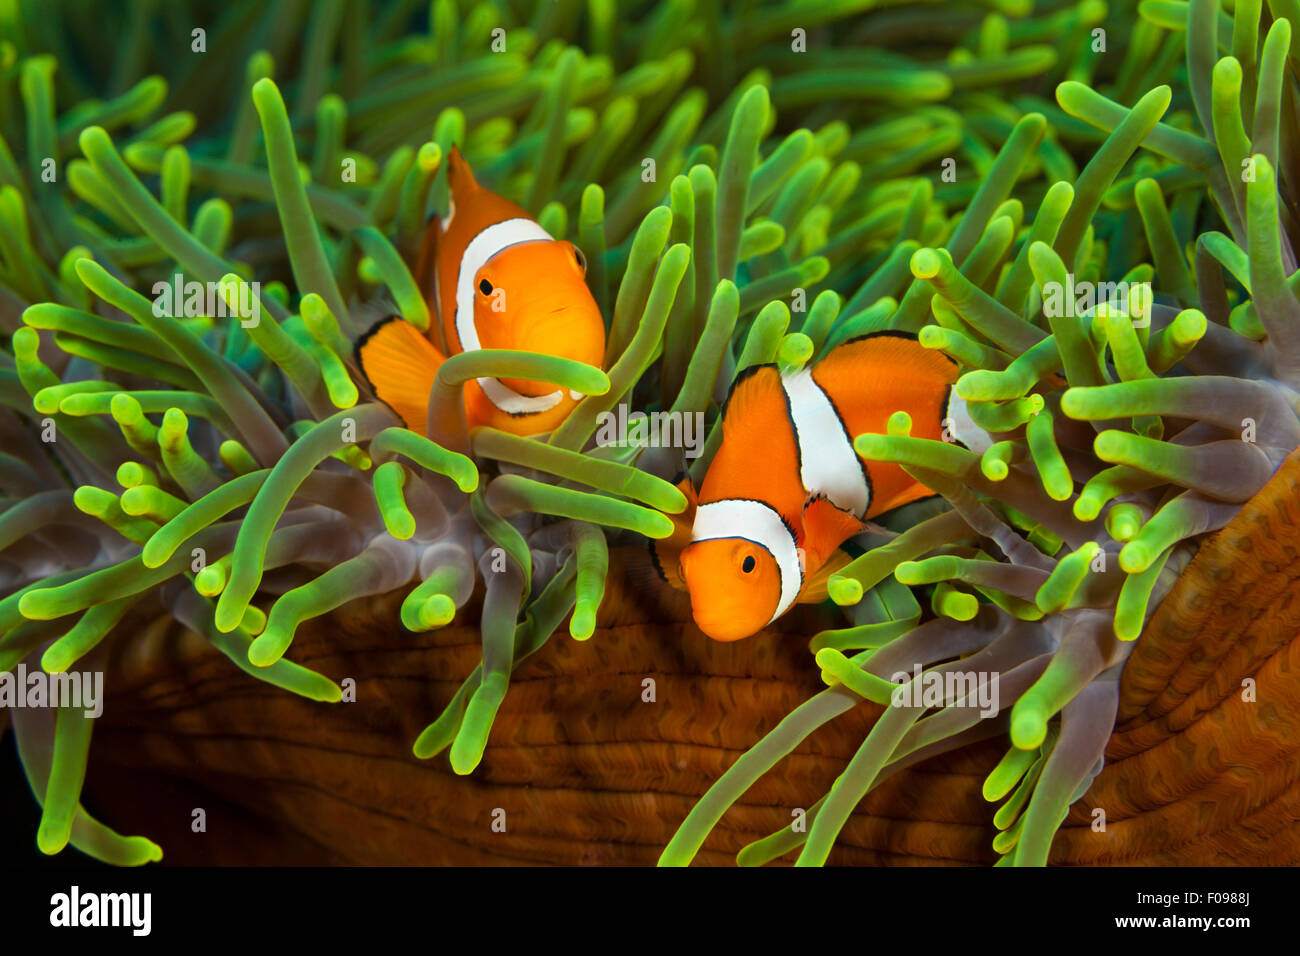 Pair of Clown Anemonefish, Amphiprion ocellaris, Florida Islands, Solomon Islands - Stock Image